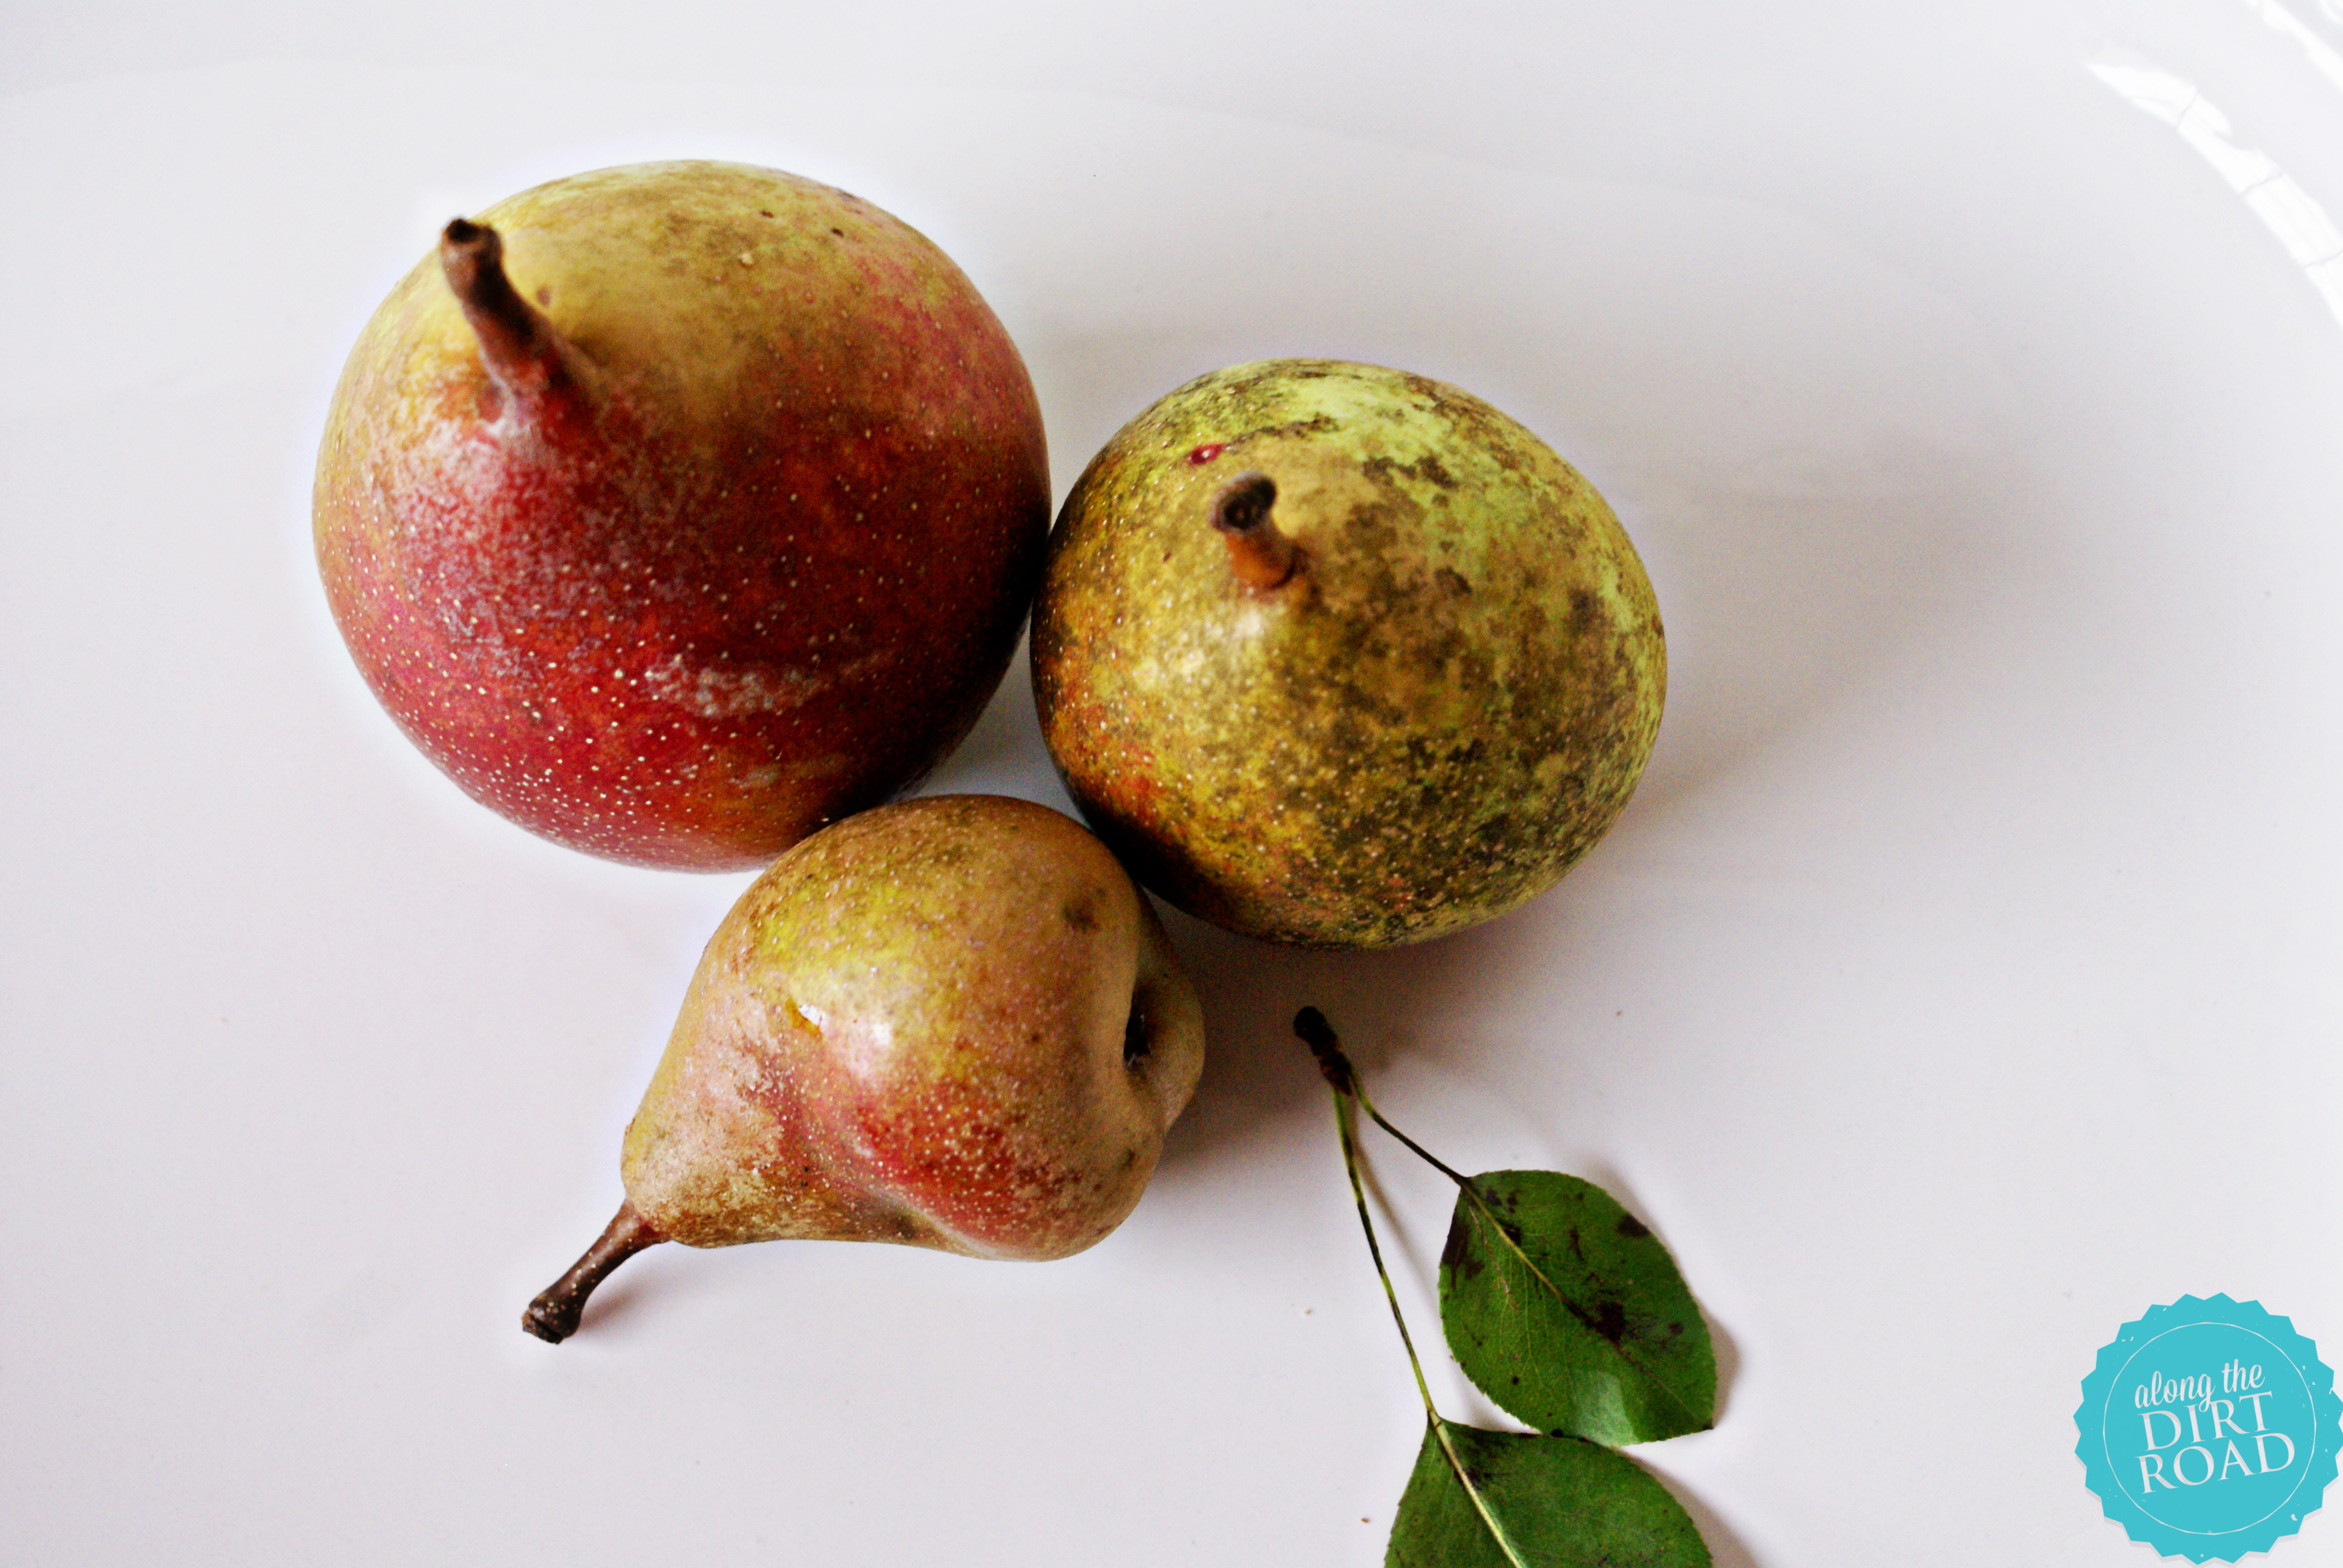 the process is so simple for freezing that i can tell you in a few simple steps - Can You Freeze Pears